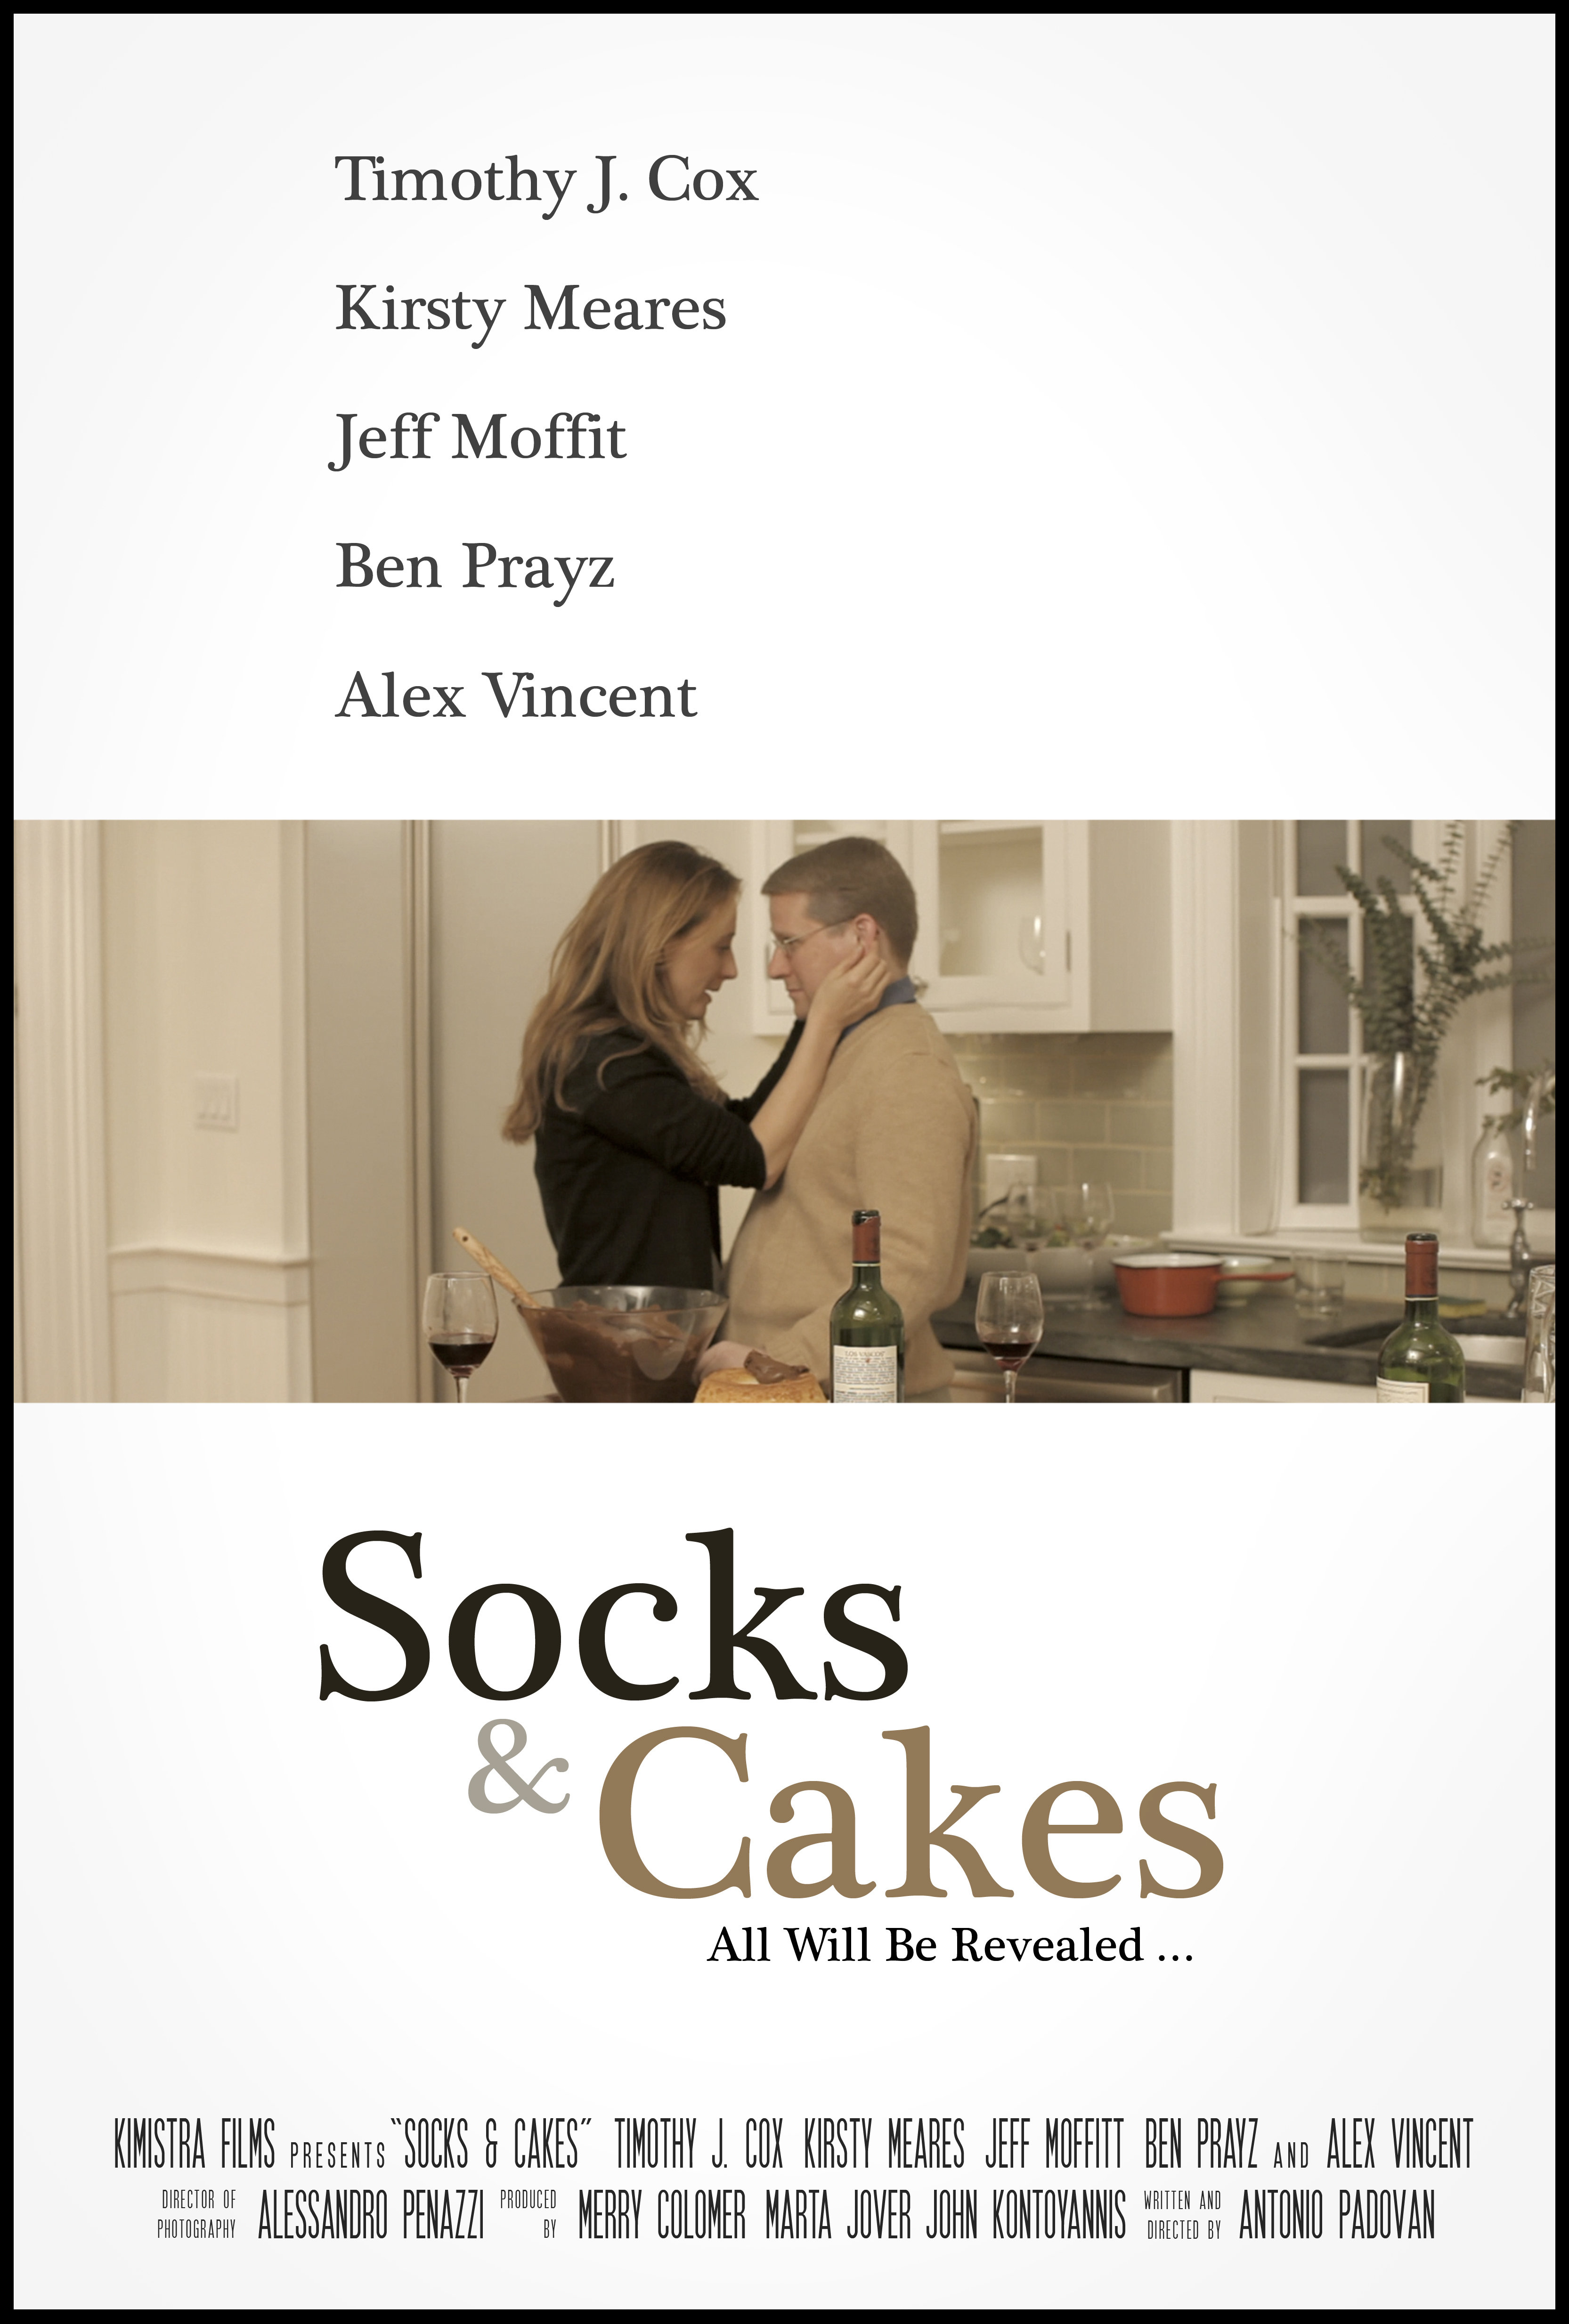 Ben Prayz, Kirsty Meares, Timothy J. Cox, Jeff Moffitt, Merry Colomer, Zeus Kontoyannis, Alex Vincent, Antonio Padovan, Marta Jover, Alessandro Penazzi, and Redmond Stevenson in Socks and Cakes (2010)